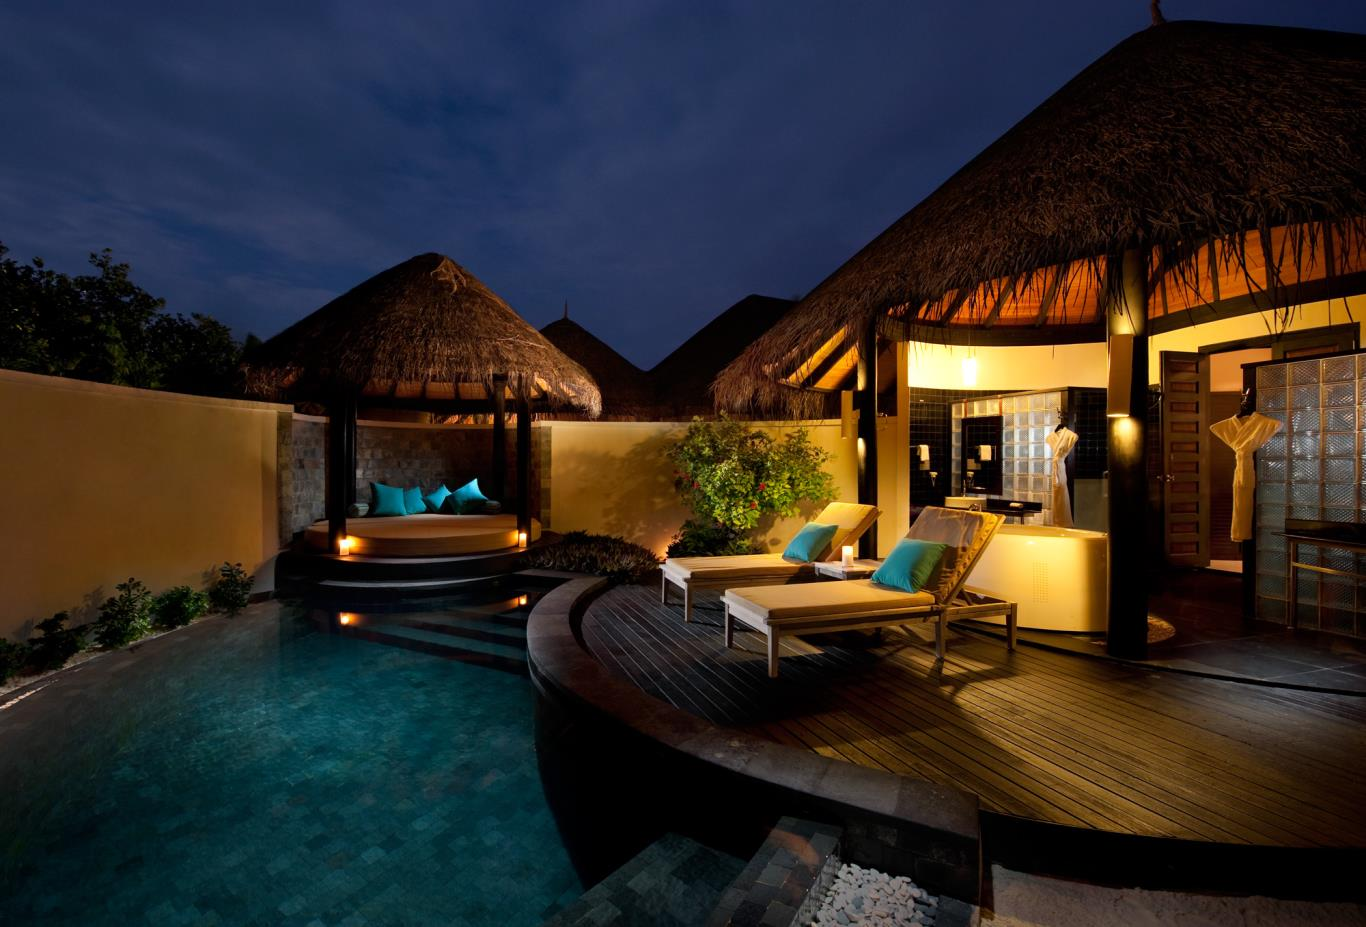 Pool Beach Villa Exterior